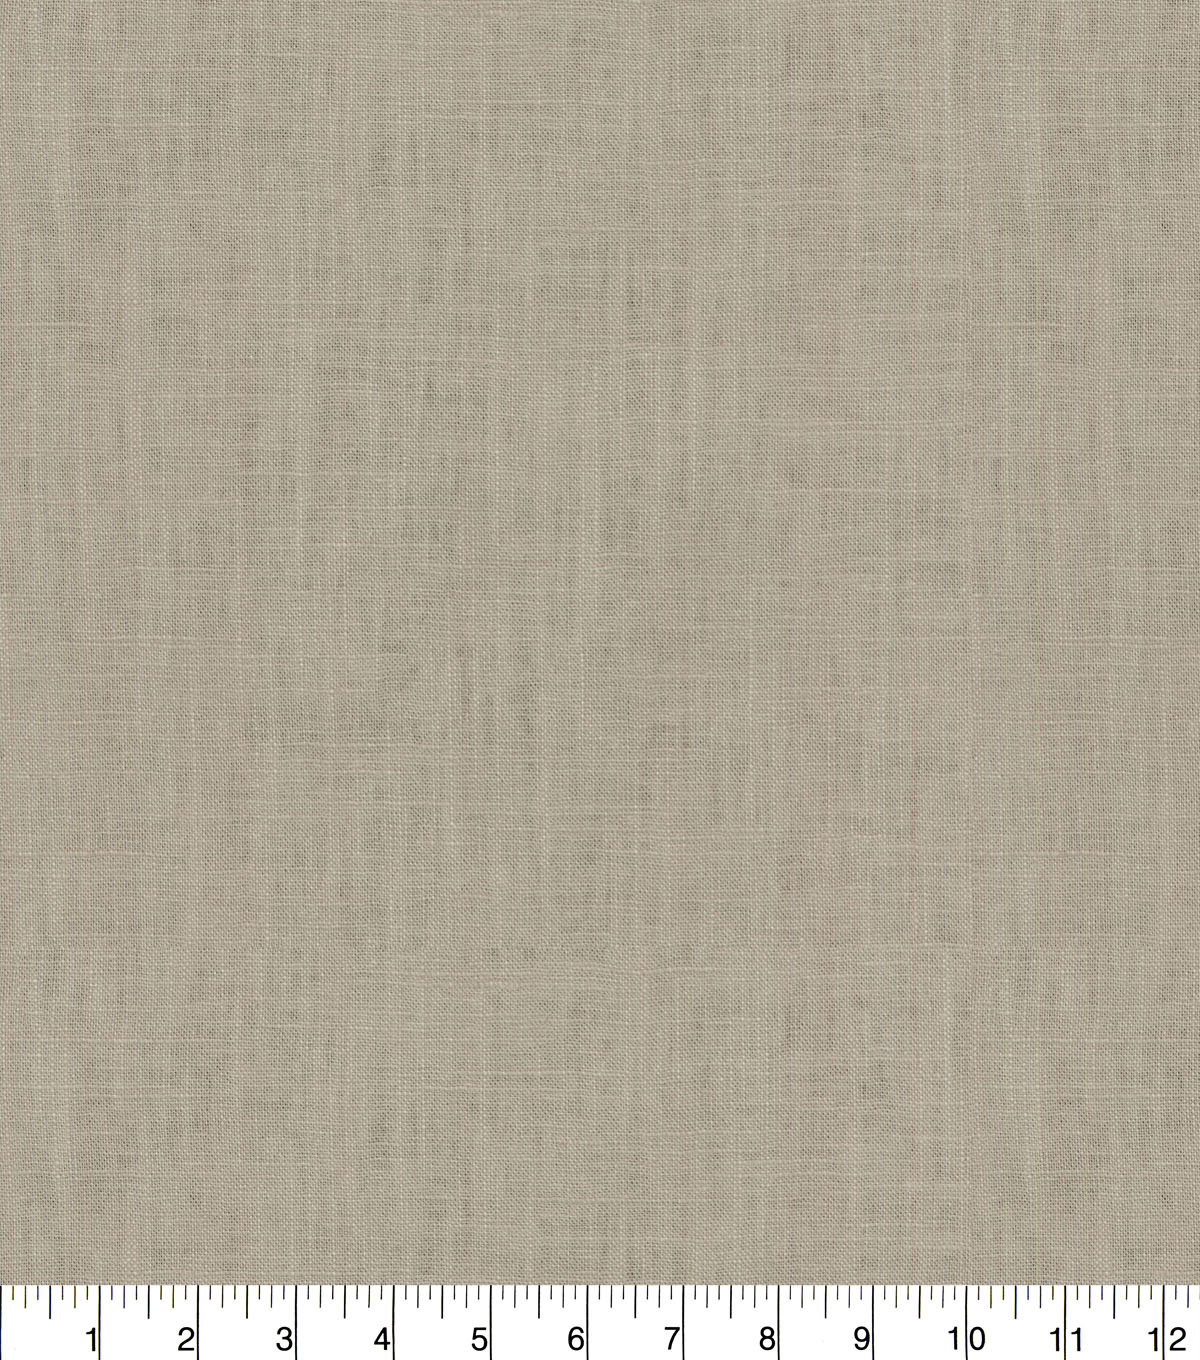 Home Decor 8\u0022x8\u0022 Fabric Swatch-P/K Lifestyles Shoreline Fossil